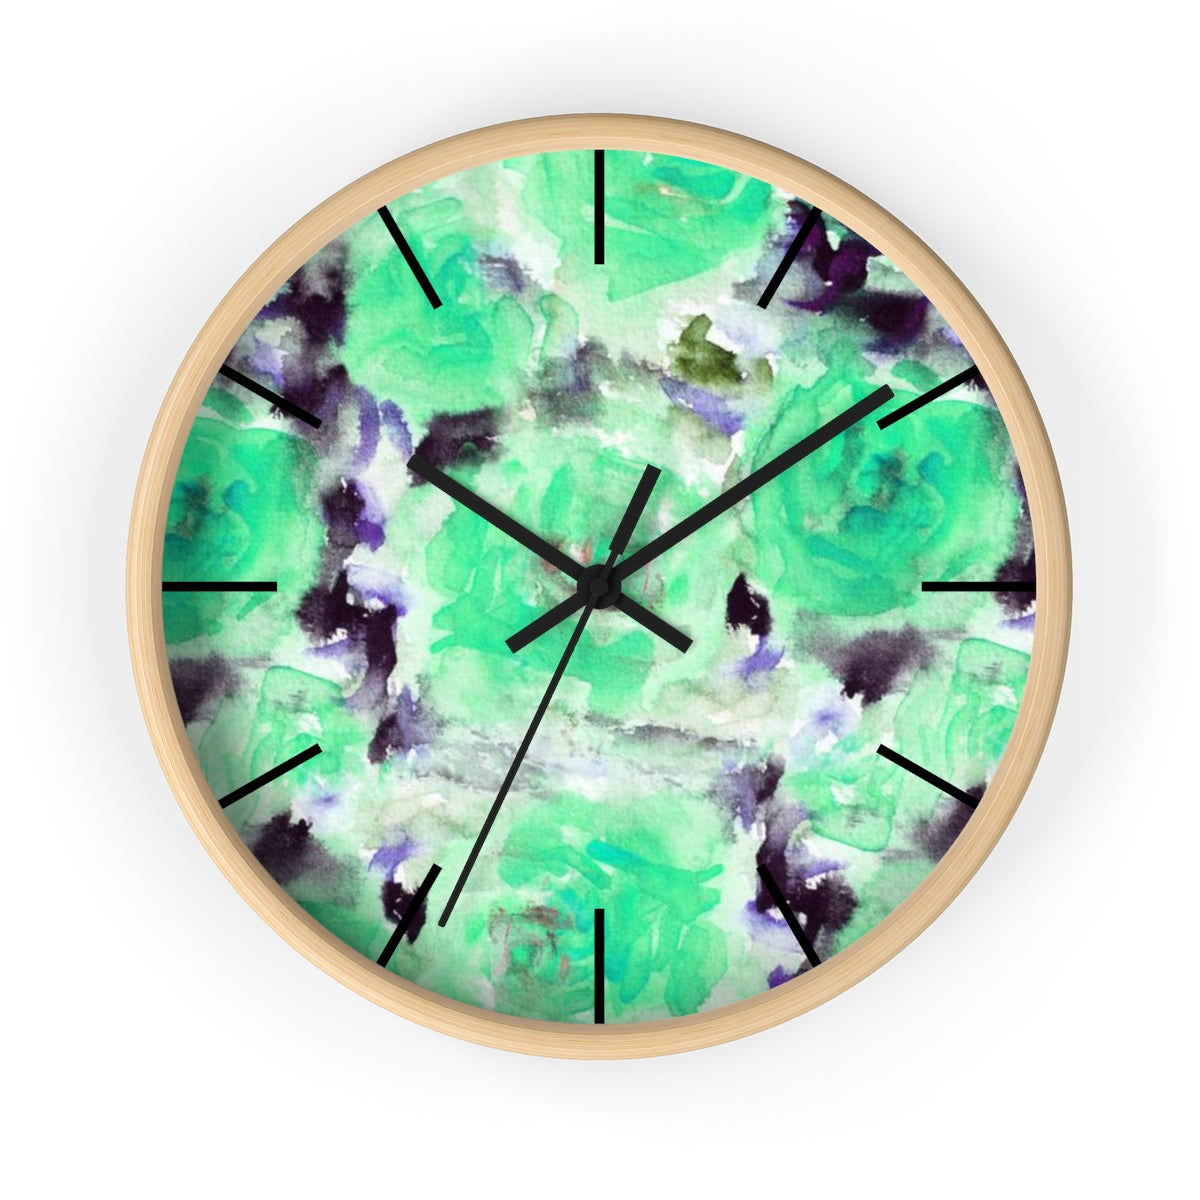 "Turquoise Blue Floral Print Abstract Rose 10"" Diameter Wall Clock - Made in USA-Wall Clock-Wooden-Black-Heidi Kimura Art LLC"